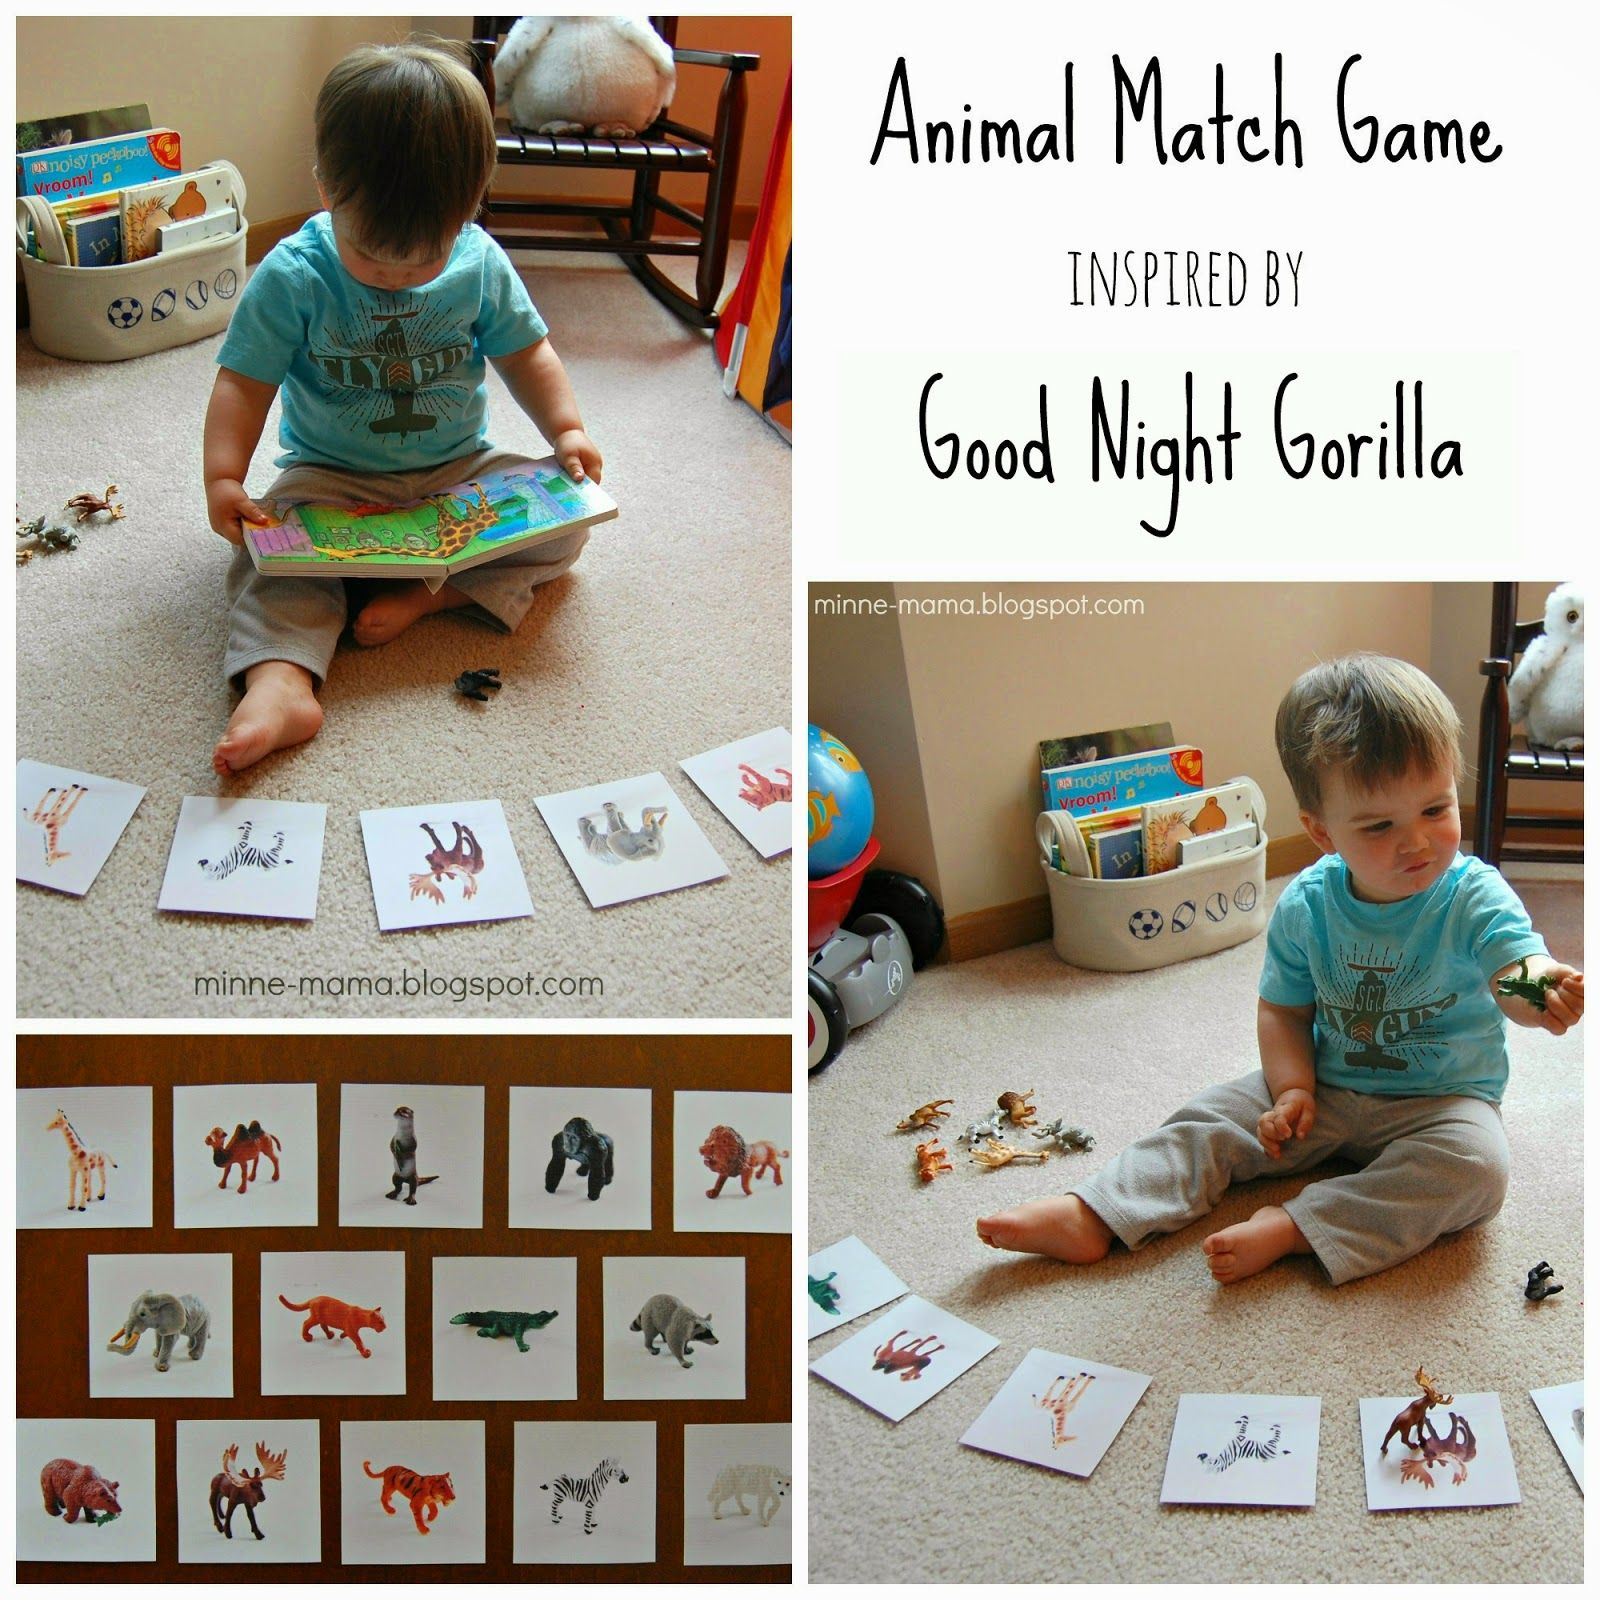 Good Night Animals Match Game